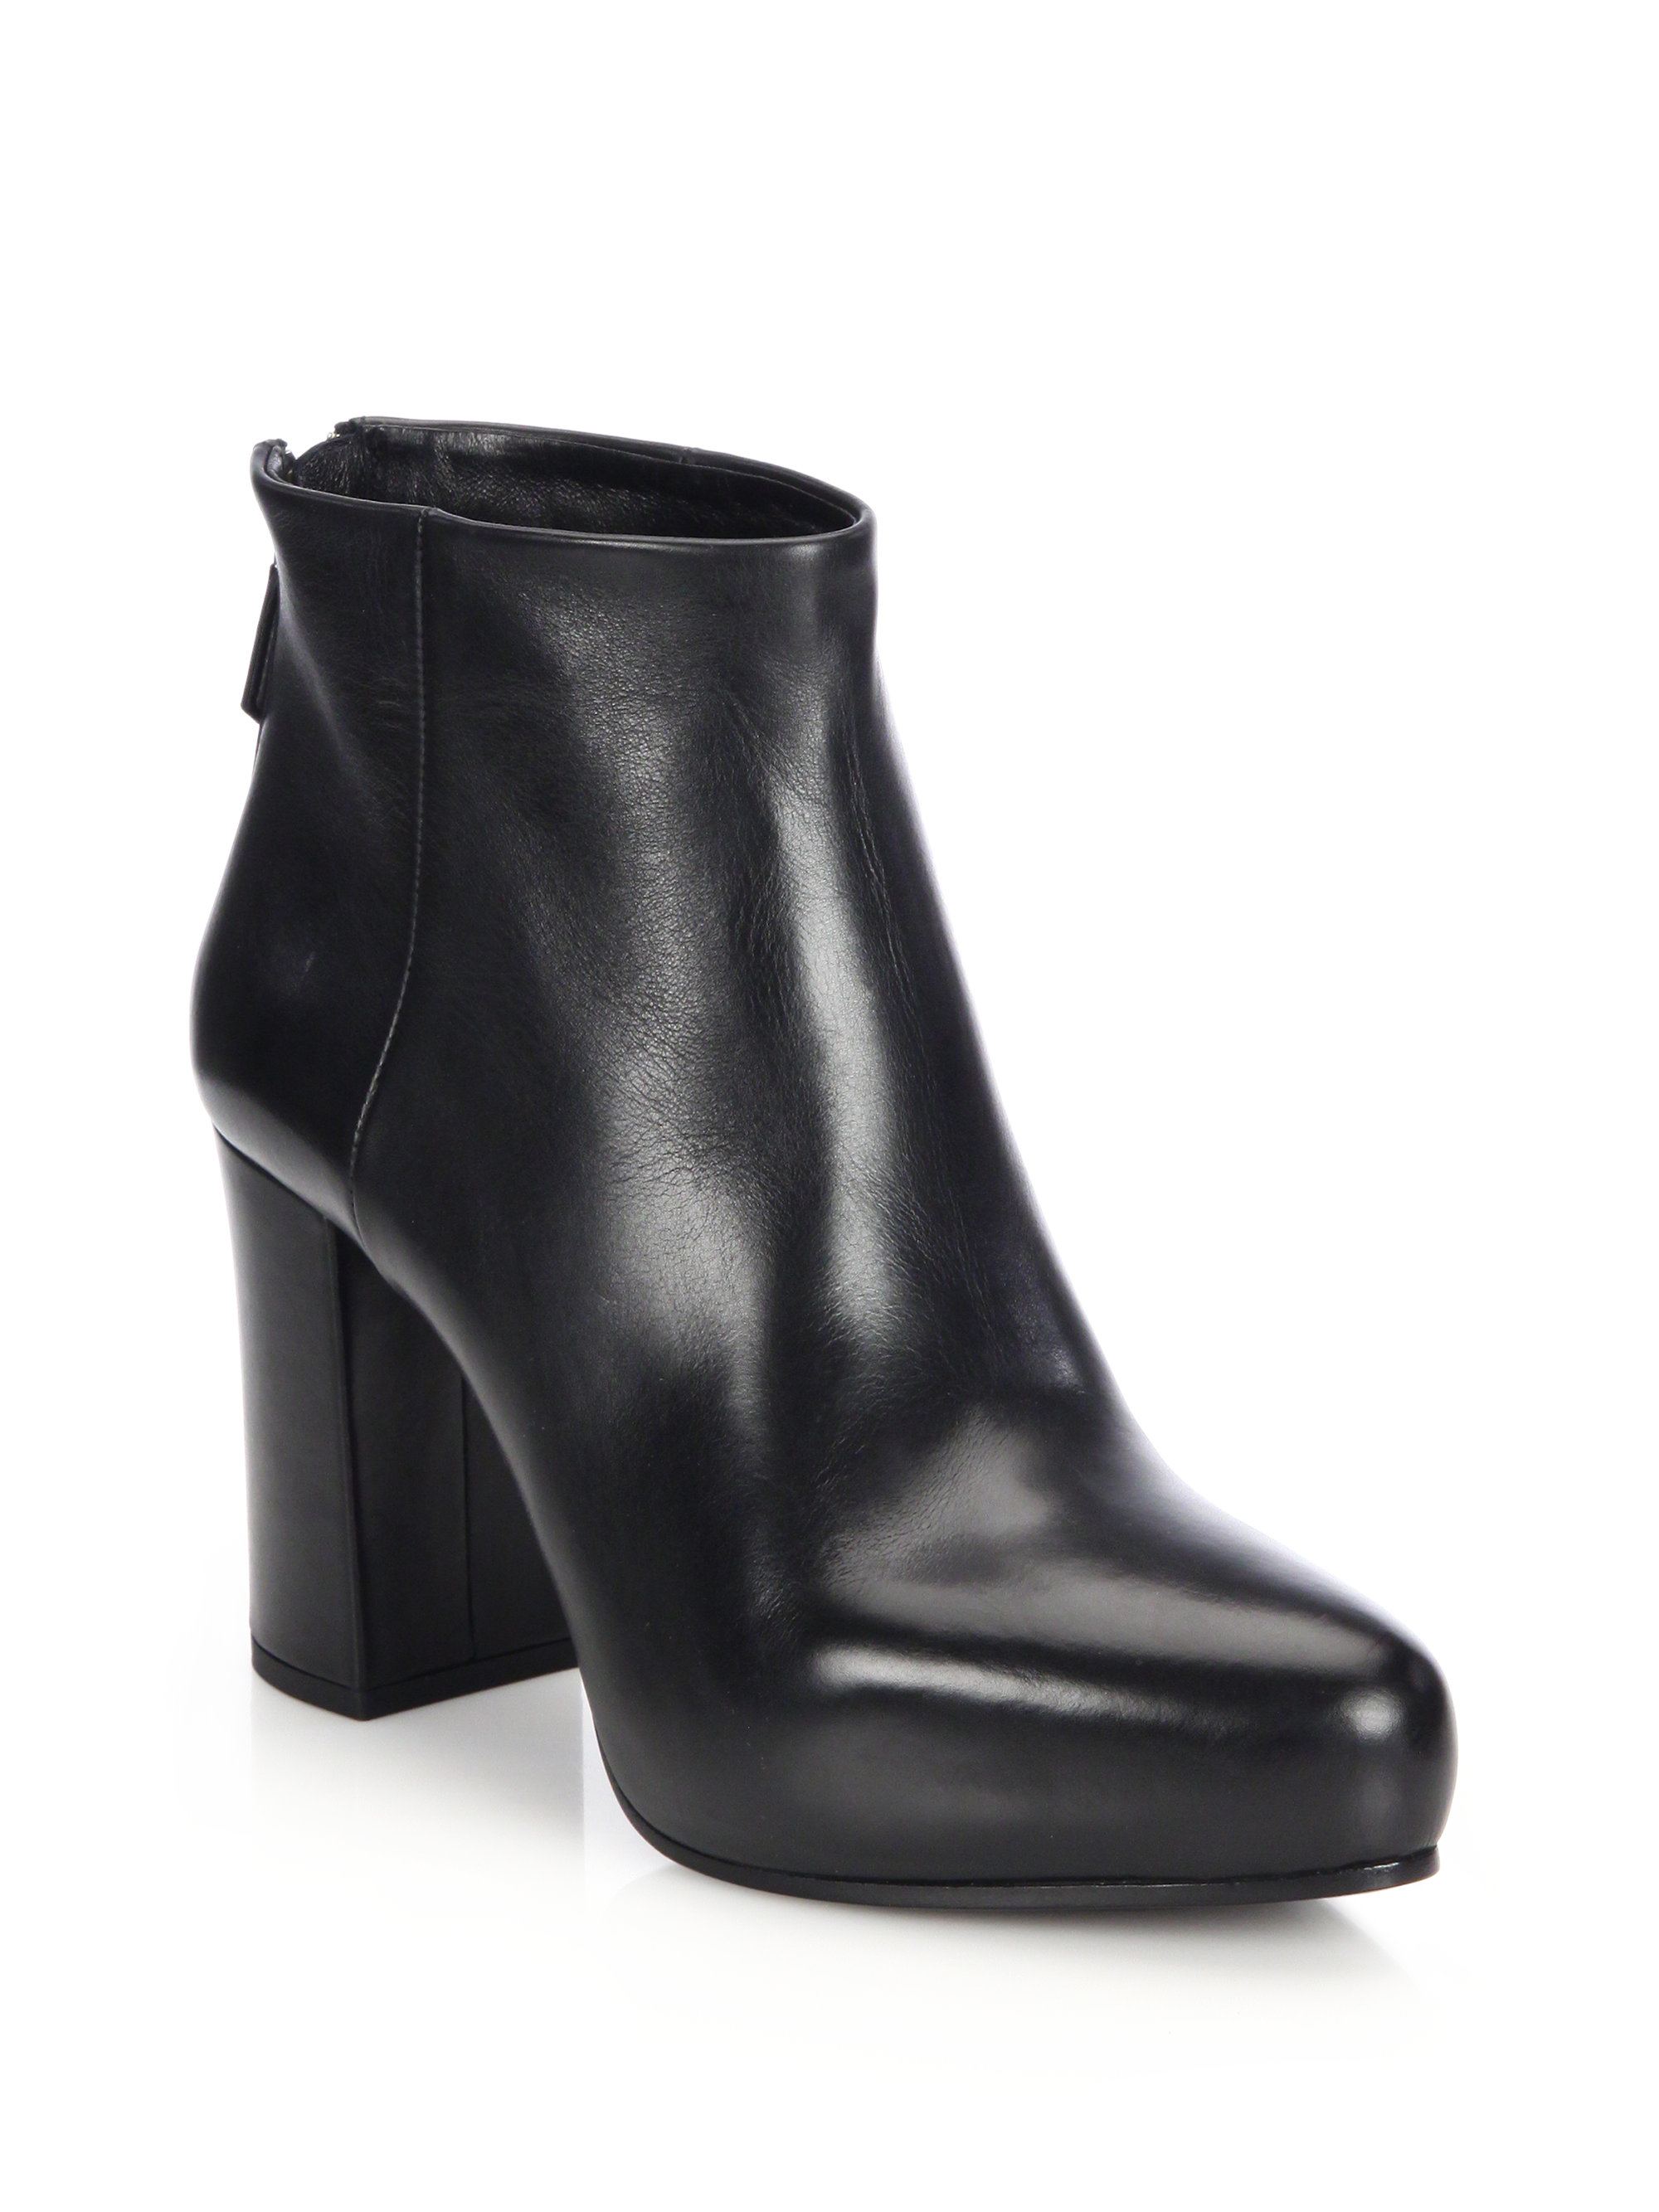 Shop women's shoes, heels, flats, sandals and boots for women from White House Black Market in a variety of styles and colors. Free shipping for all WHBM rewards members.